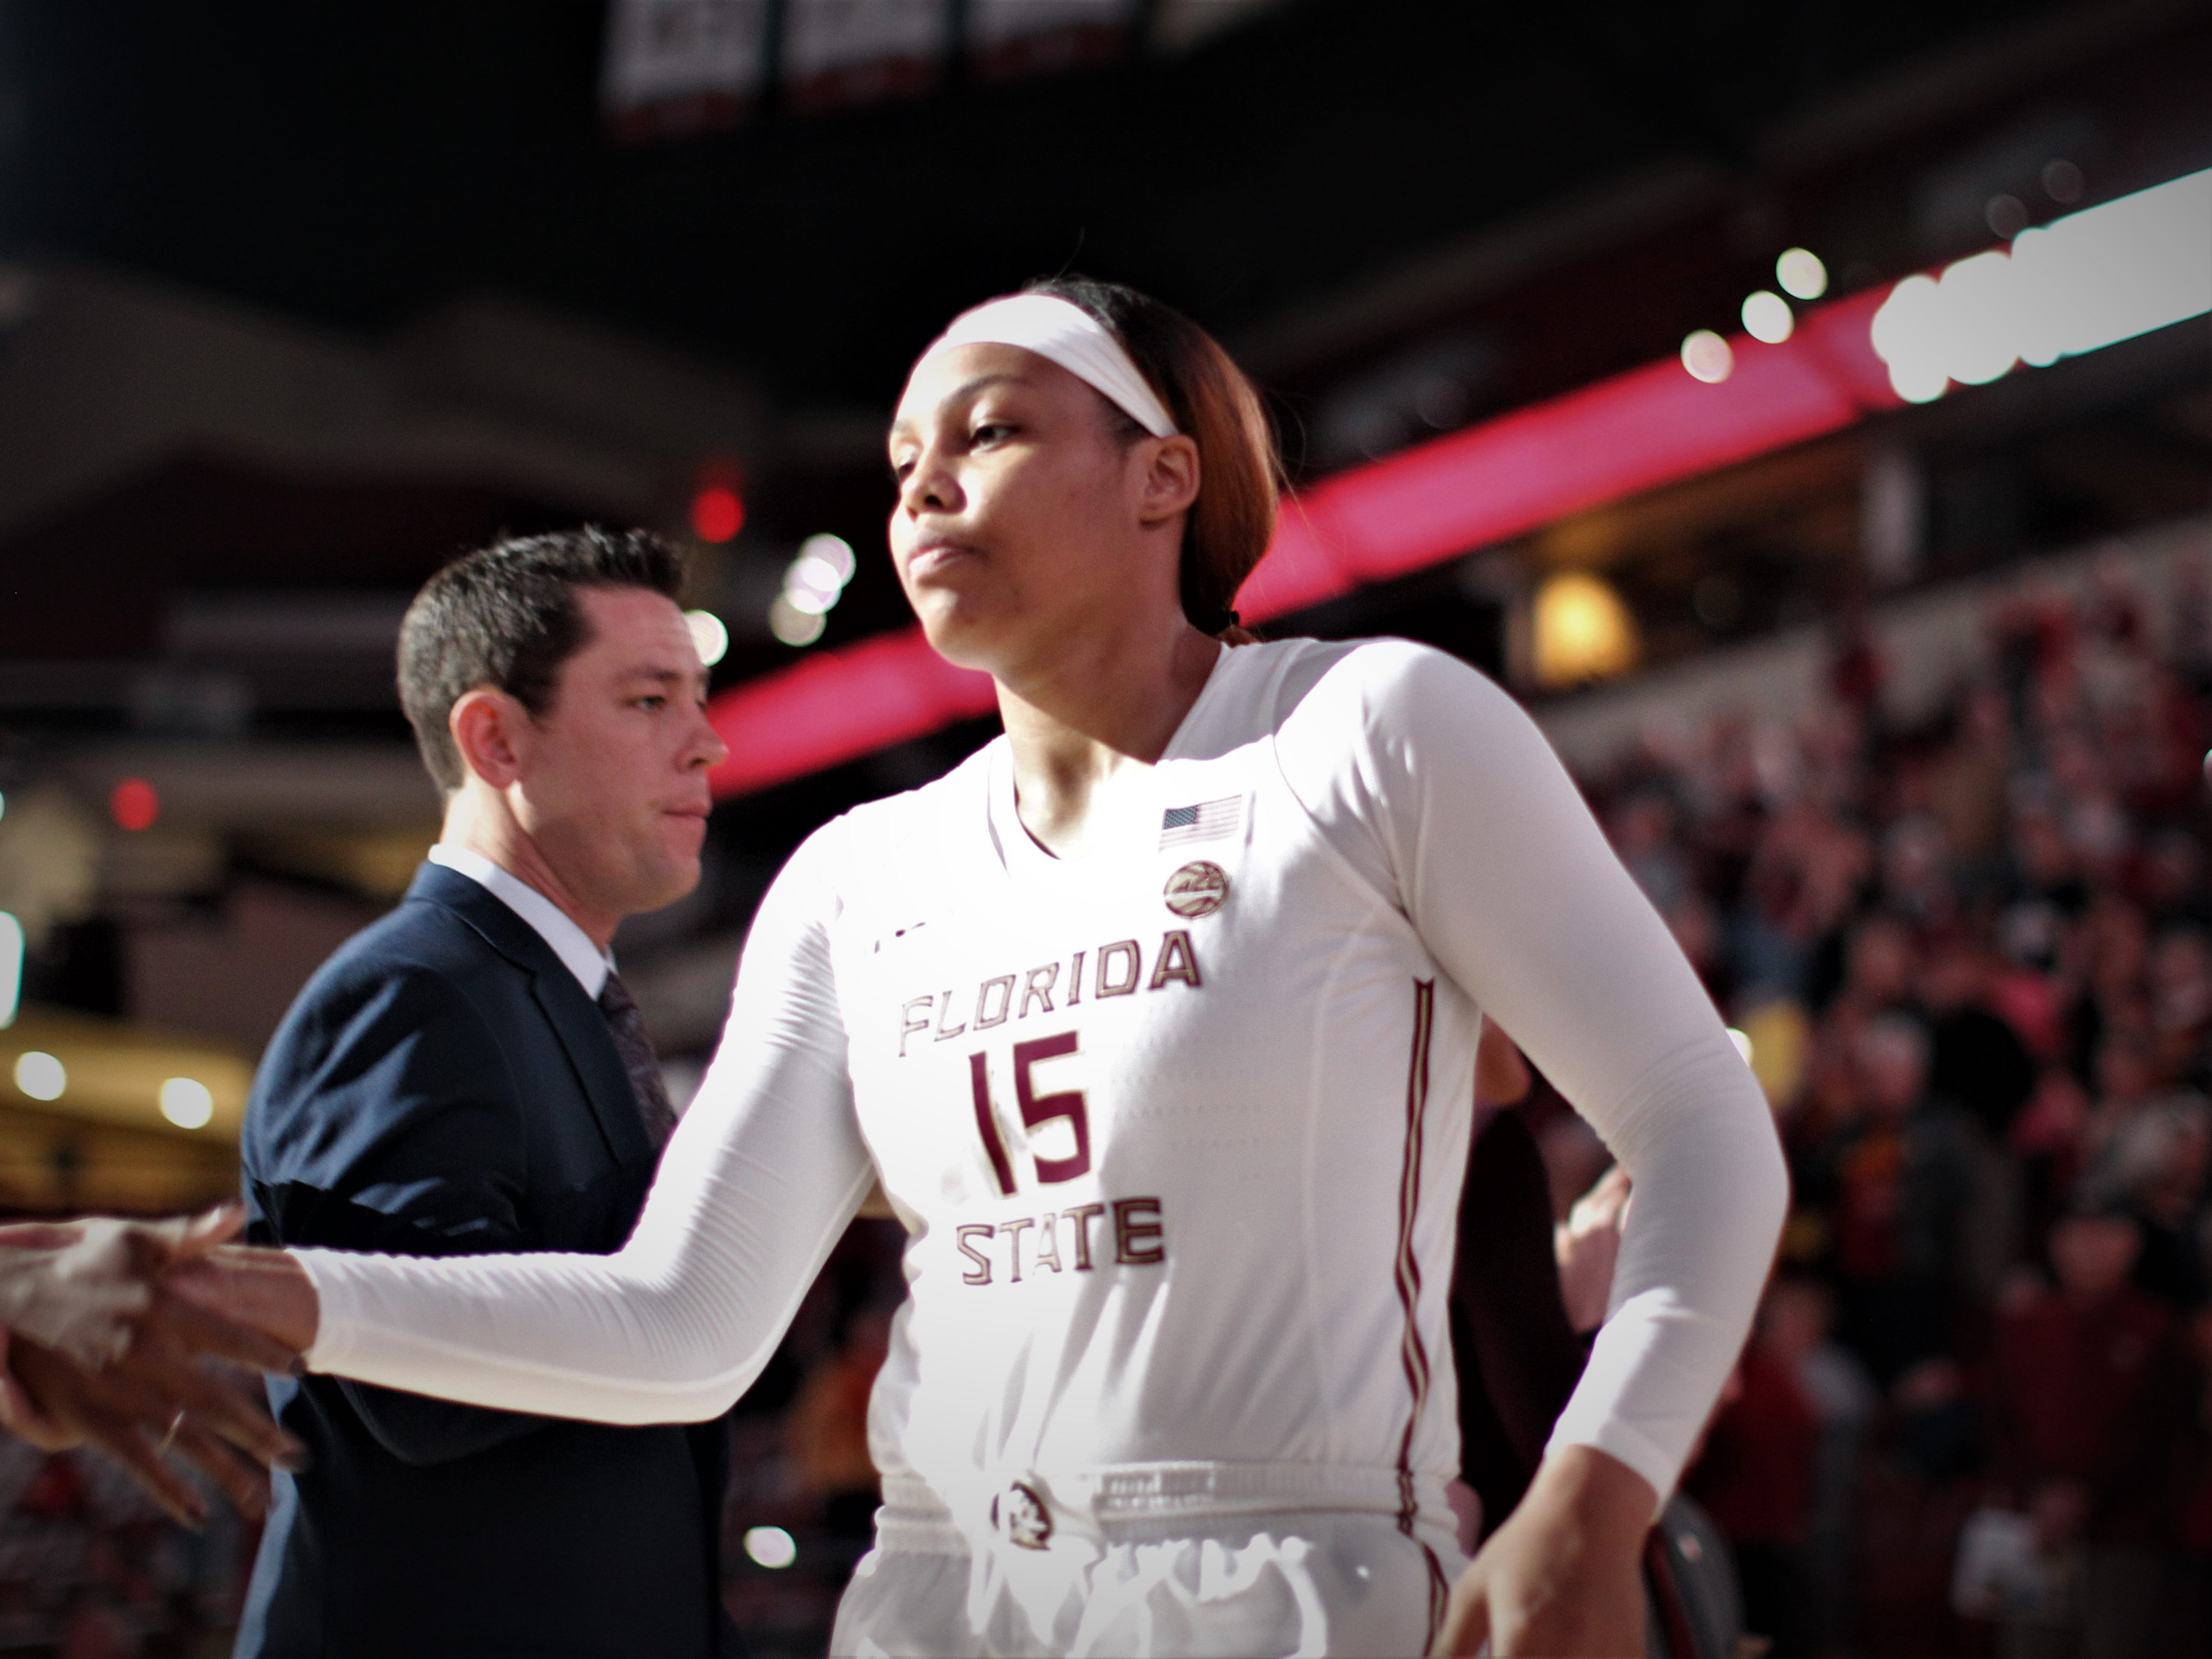 Florida State junior Kiah Gillespie is introduced as a starter prior to the Seminoles' game against Florida at the Tucker Civic Center on Nov. 11, 2018.